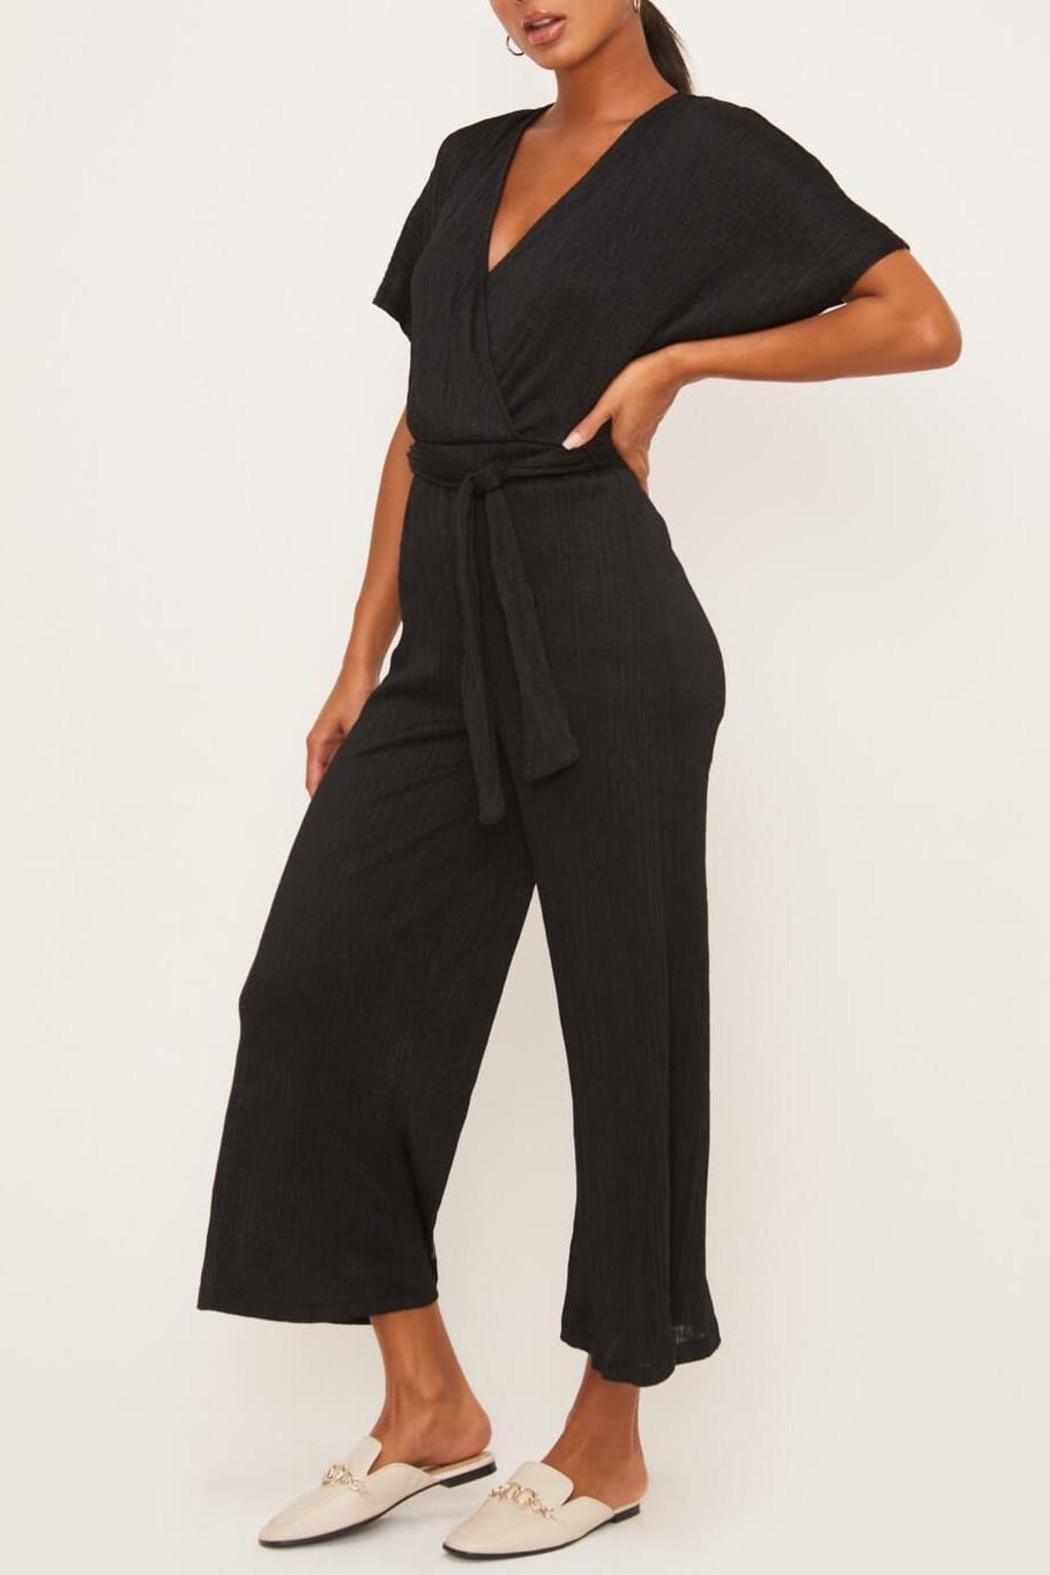 Lush Clothing  Wrap-Front Dolman Jumpsuit - Front Full Image